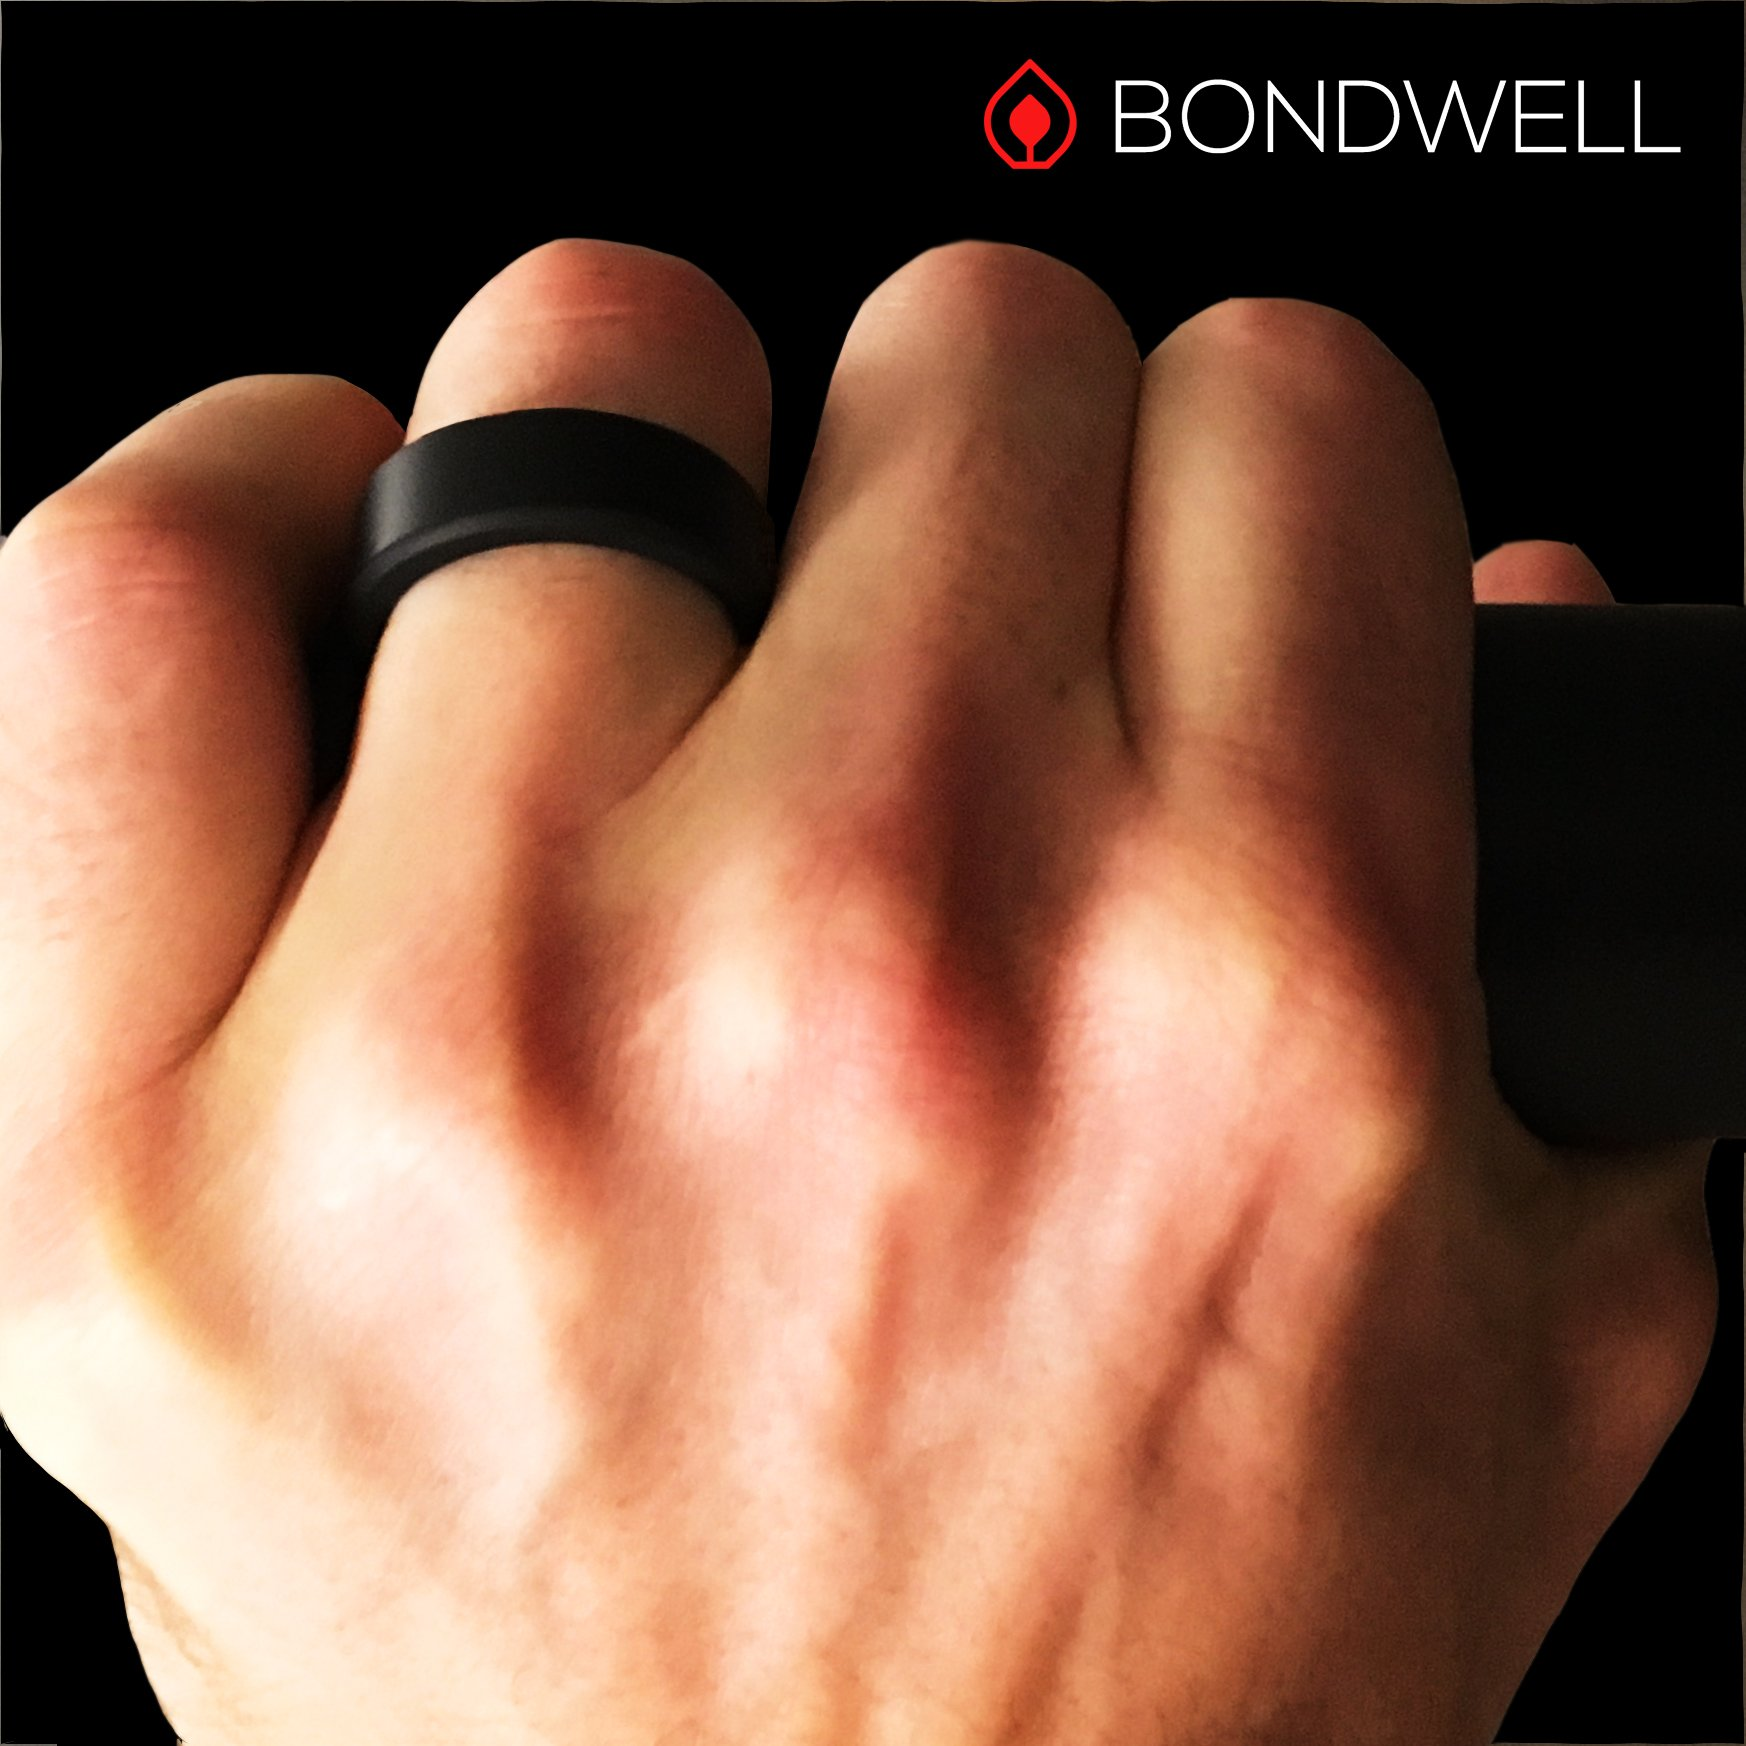 BONDWELL Silicone Wedding Ring for Men (Black) Save Your Finger & A Marriage Safe, Durable Rubber Wedding Band for Active Athletes, Military, Crossfit, Weight Lifting, Workout - 100% Guarantee (11) by BONDWELL (Image #4)